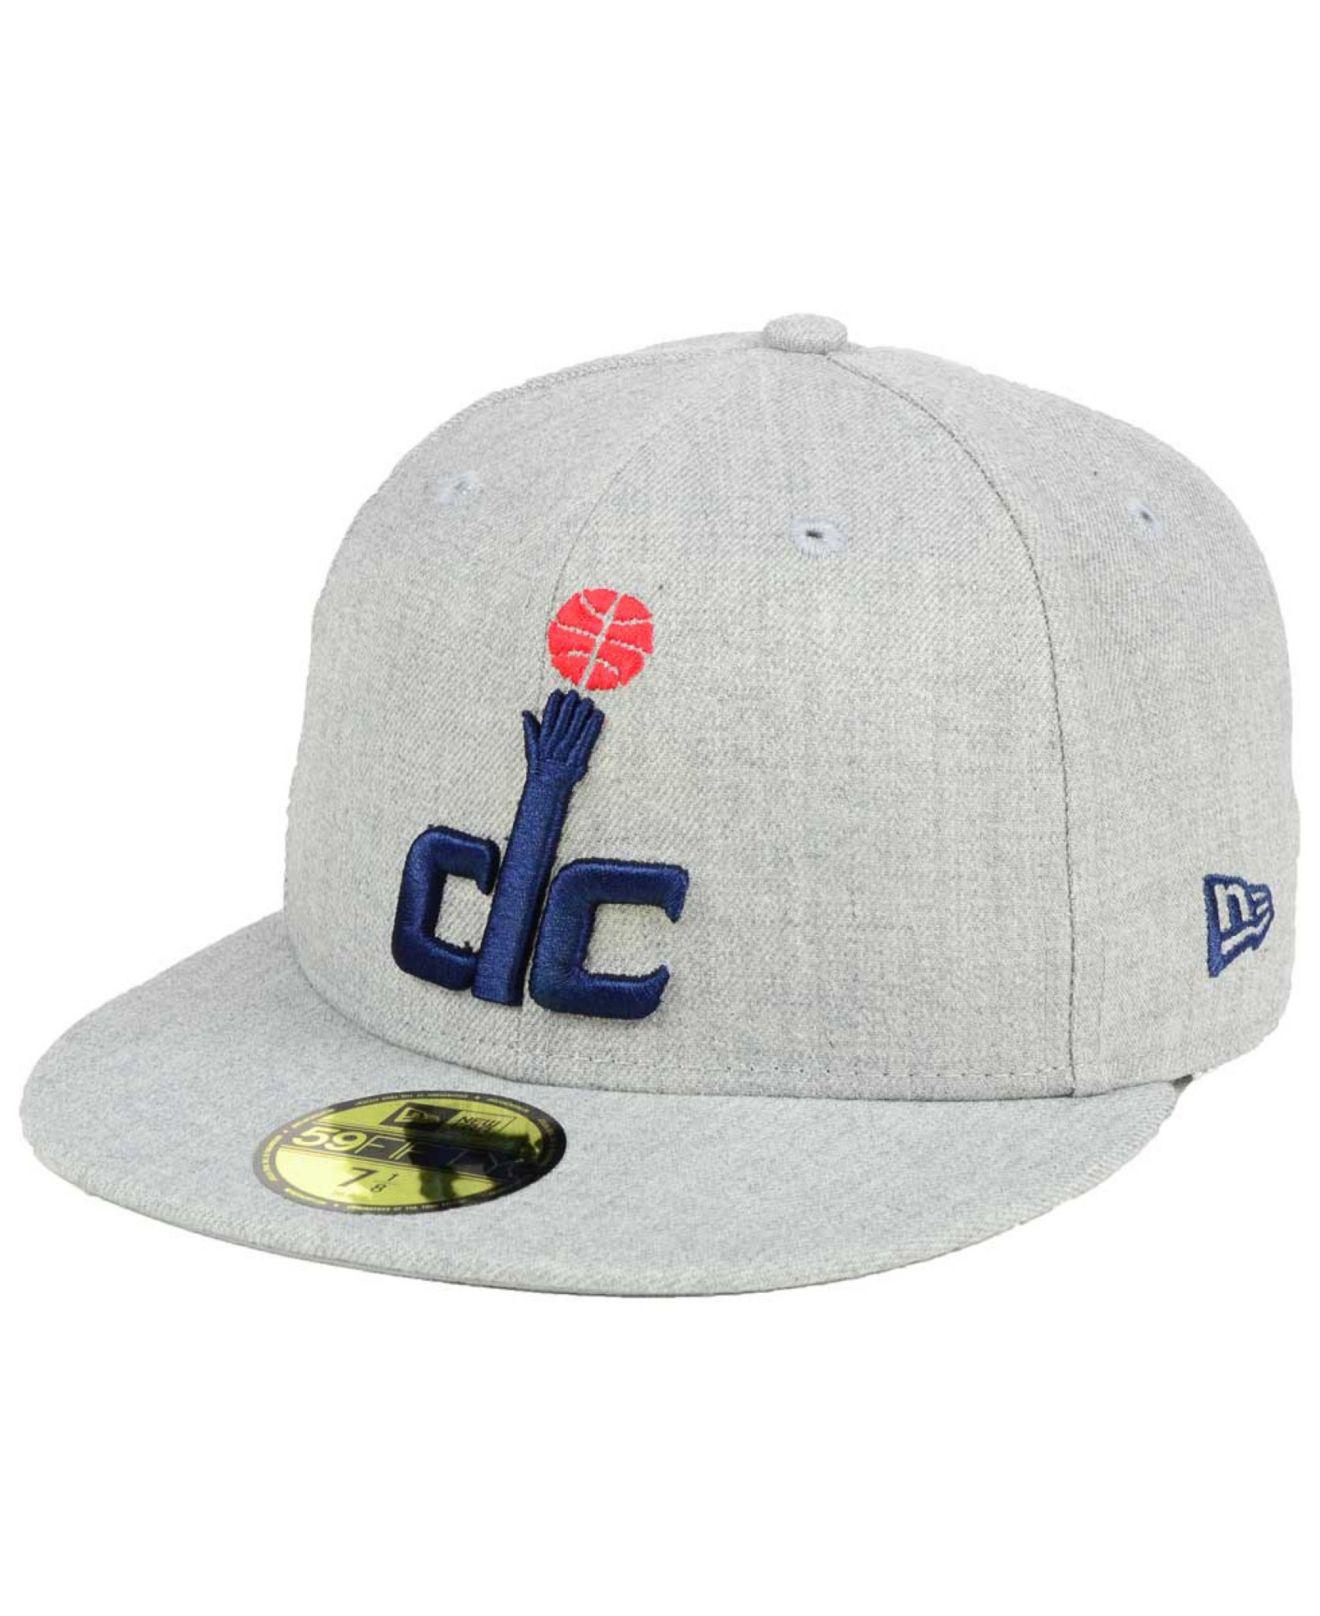 official photos cb108 03268 ... navy 2018 nba playoffs 9twenty adjustable hat 3d6a6 7311b  italy lyst  ktz washington wizards all heather 59fifty cap in gray for men 56326 c3f78